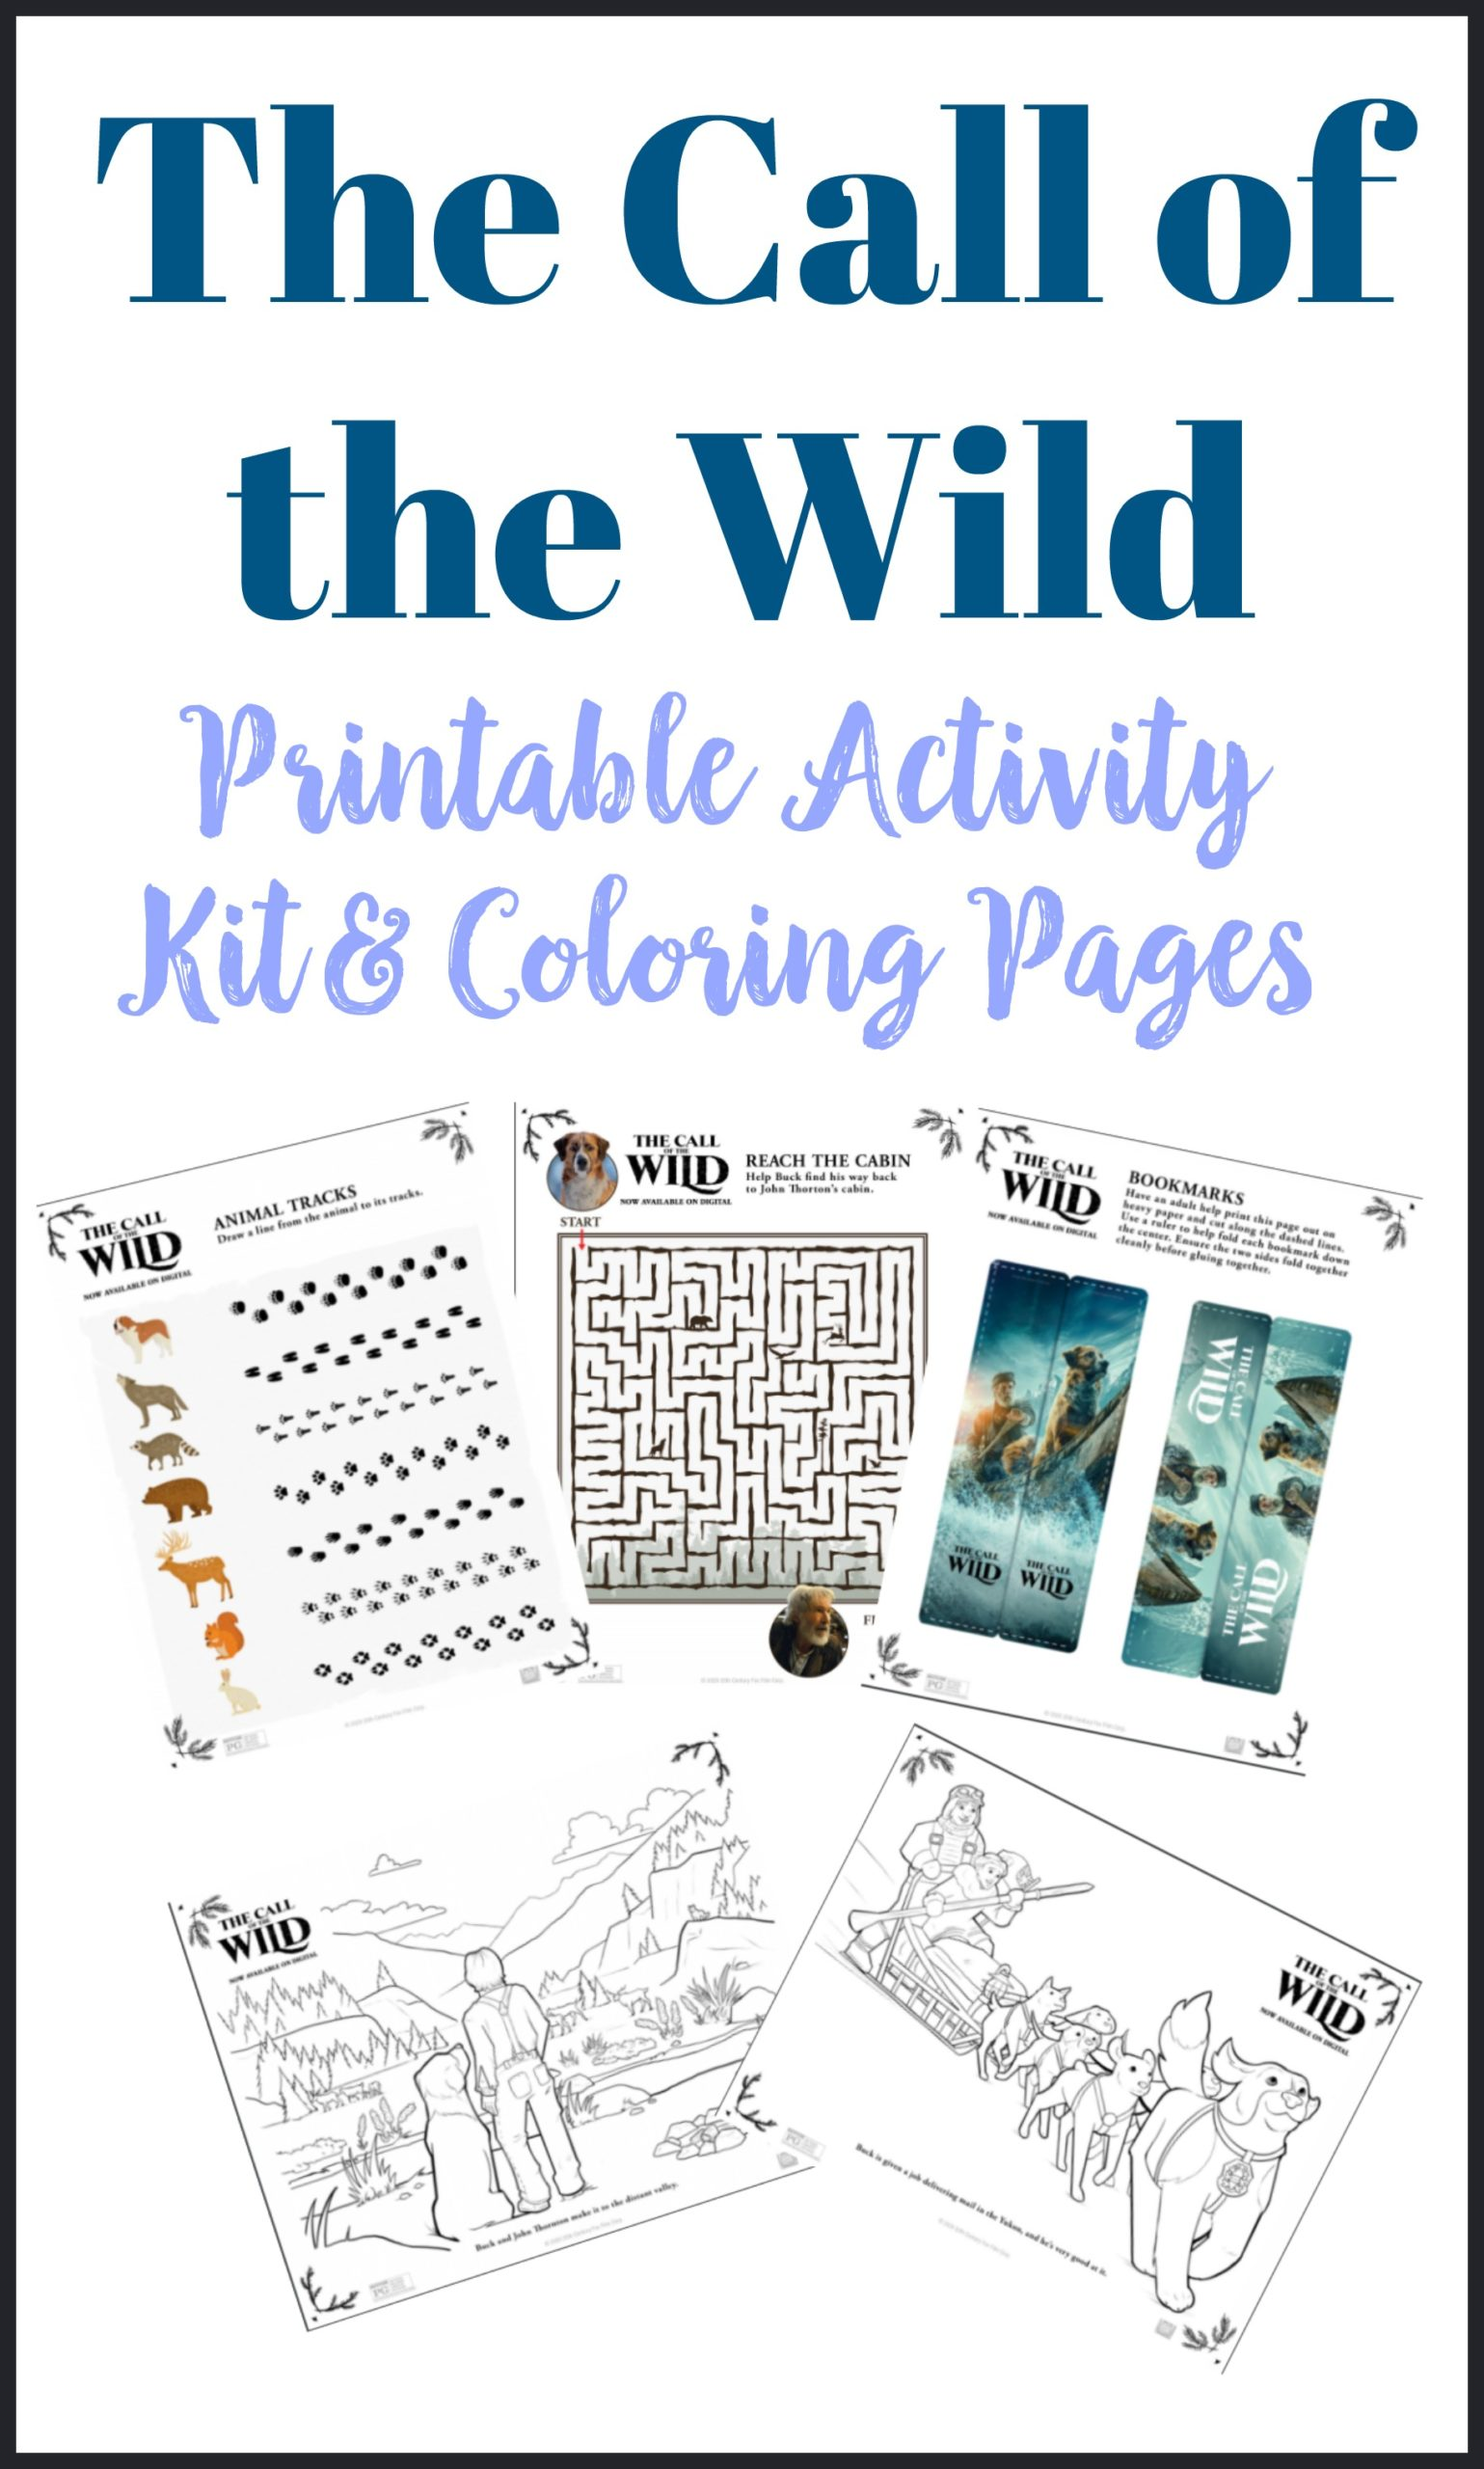 The Call of the Wild Printable Activity Kit